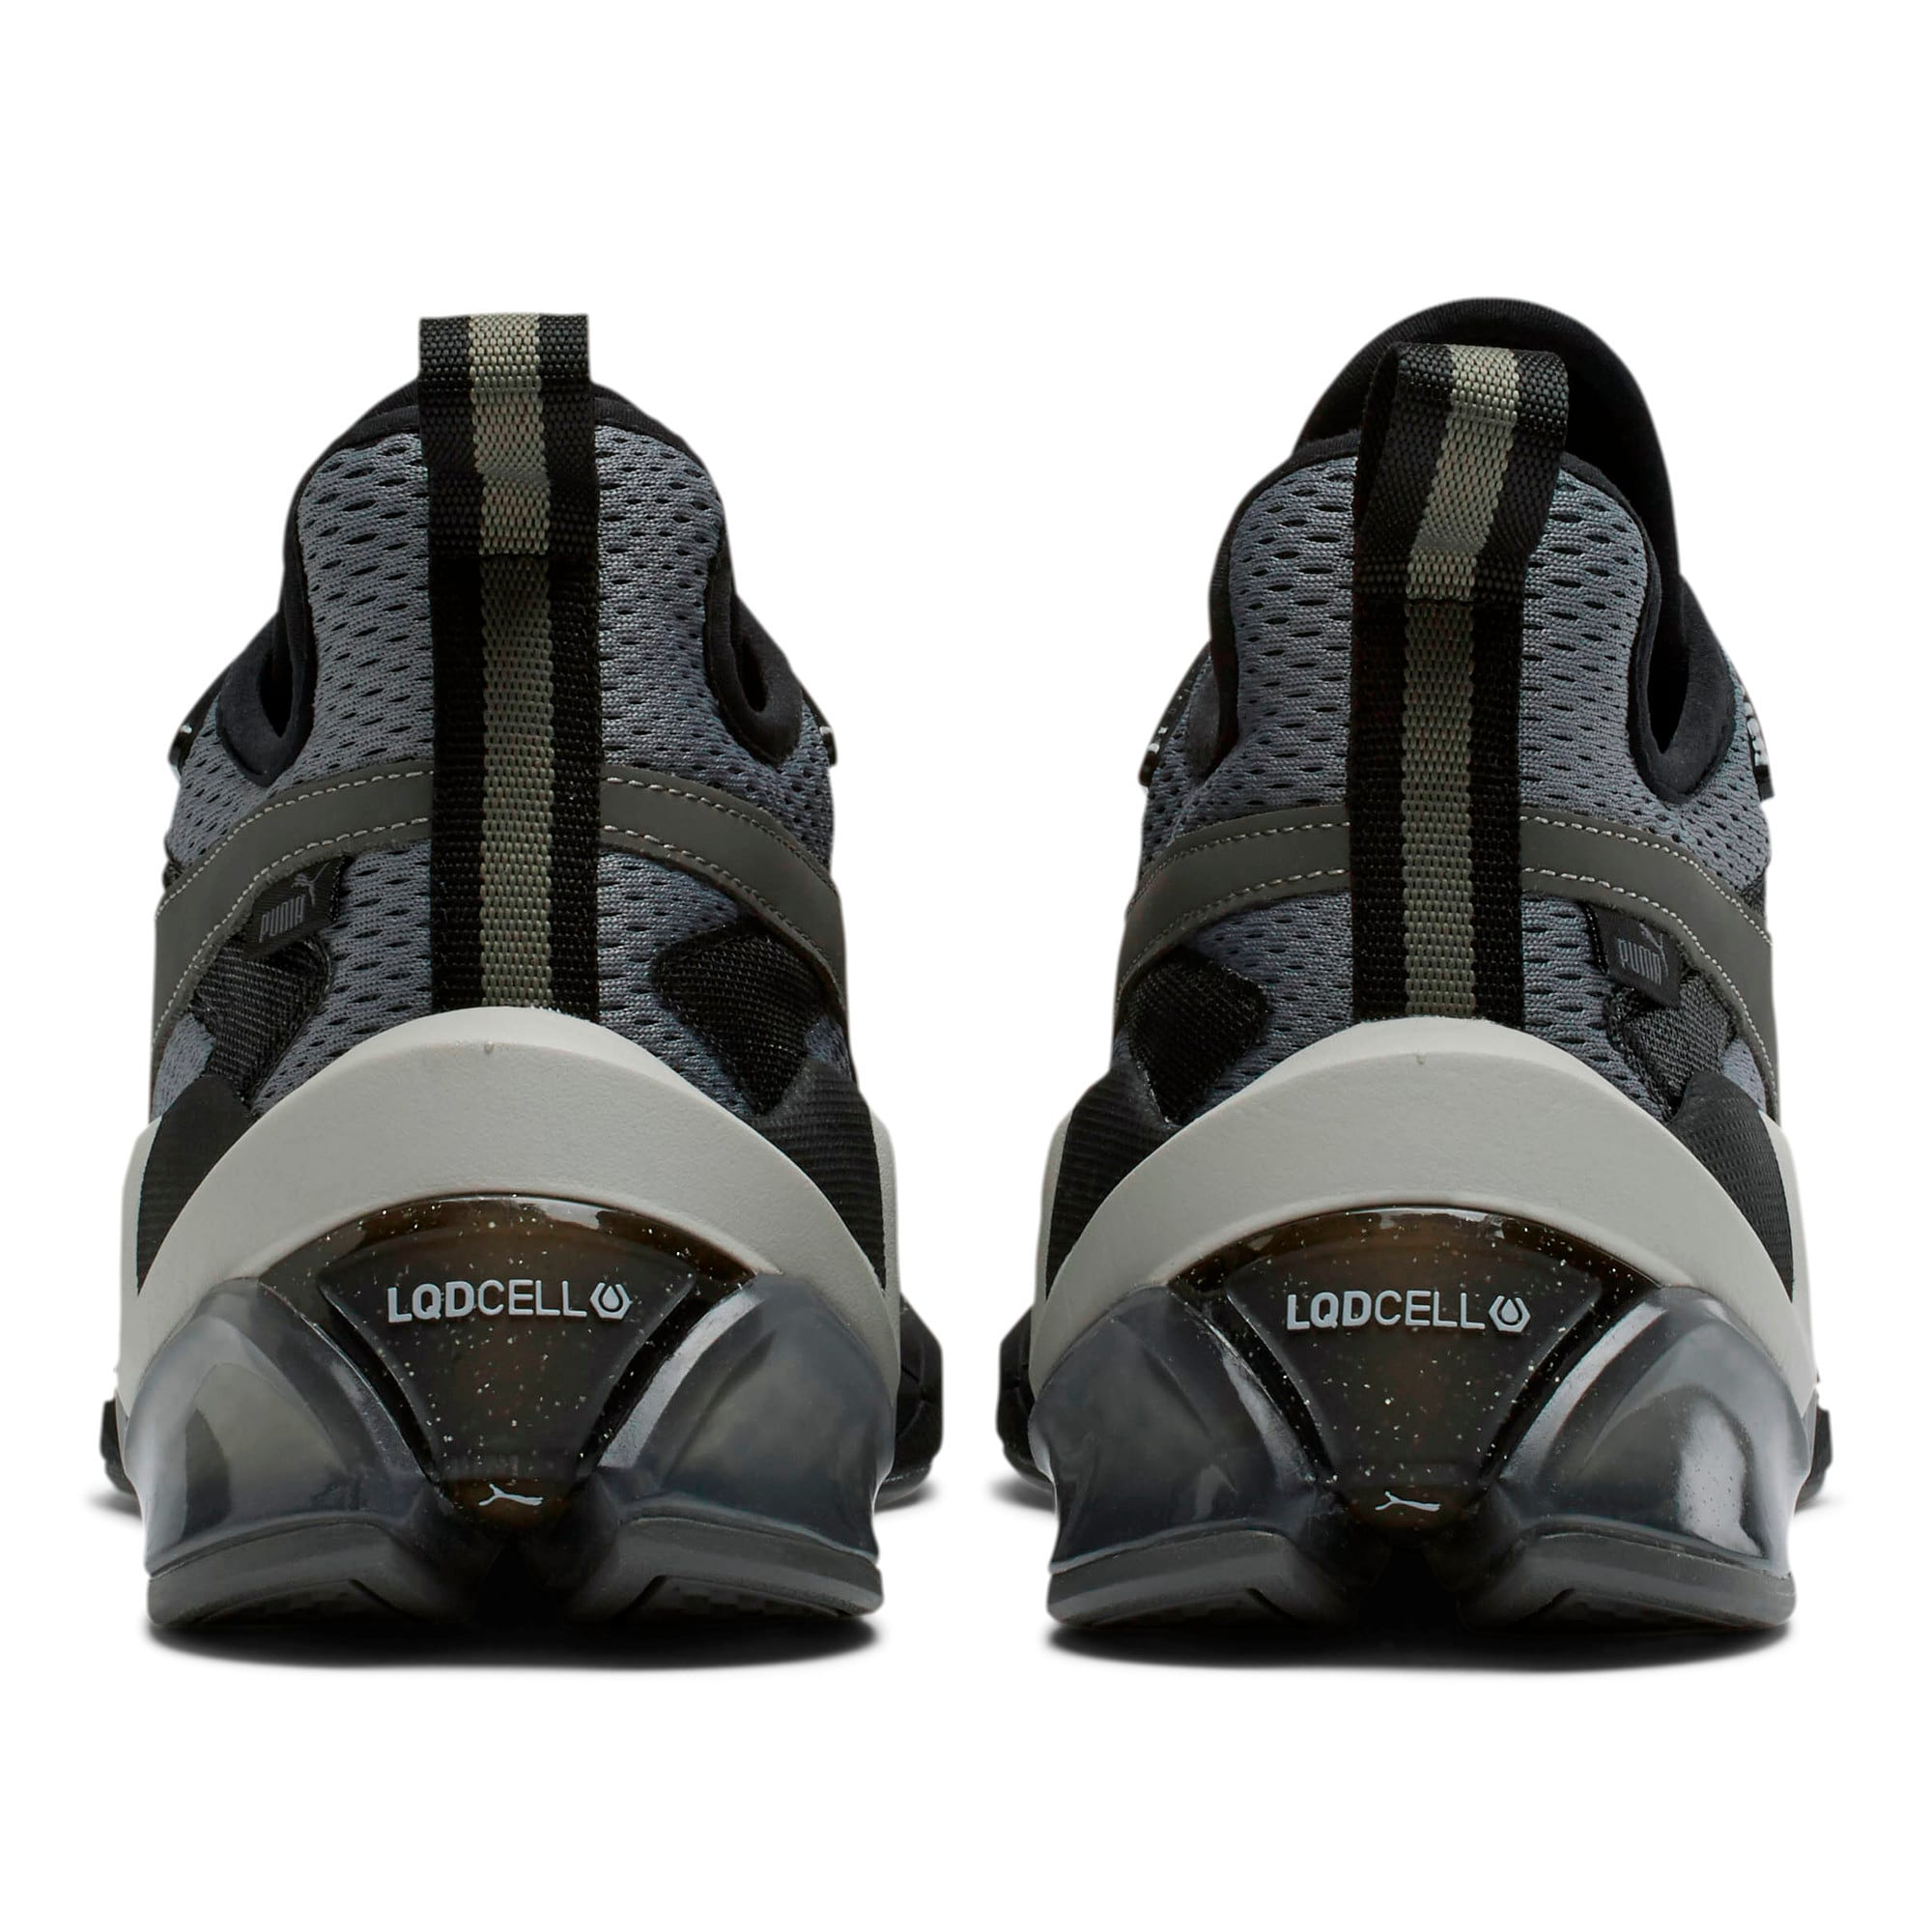 Thumbnail 4 of LQDCELL Origin Tech Men's Training Shoes, Puma Black-CASTLEROCK, medium